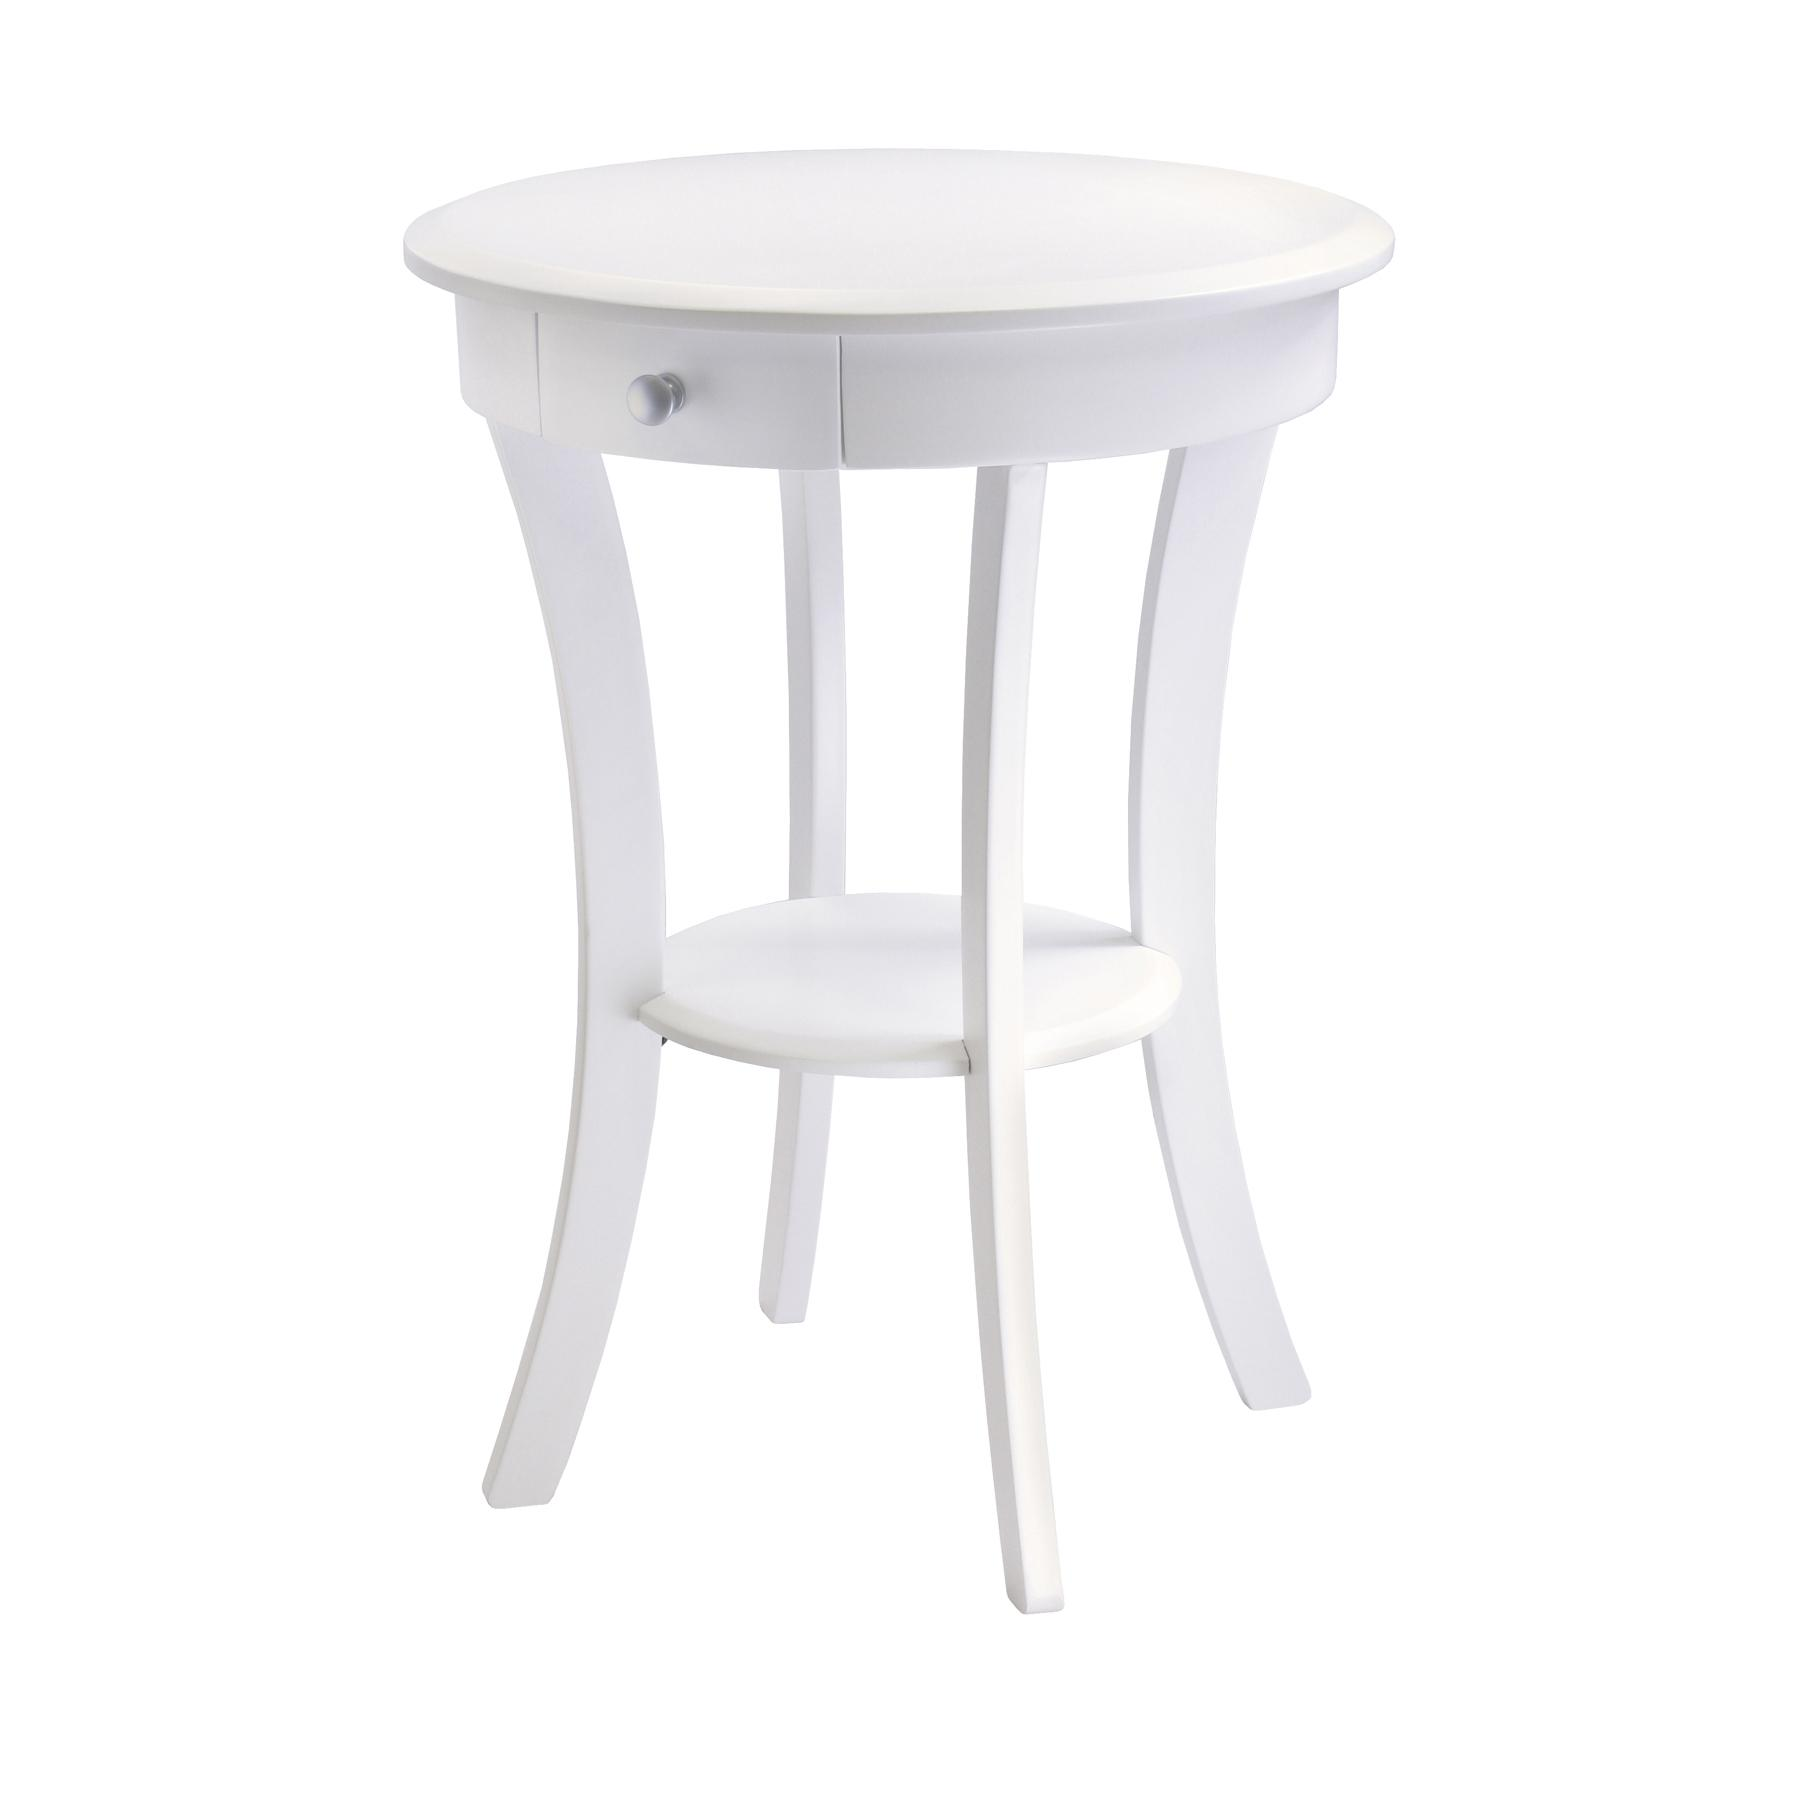 wonderful white accent tables furniture target peanut javascript html storage butter syntax tablespoons water cups generator tablespoon latex css grams table liquid convert